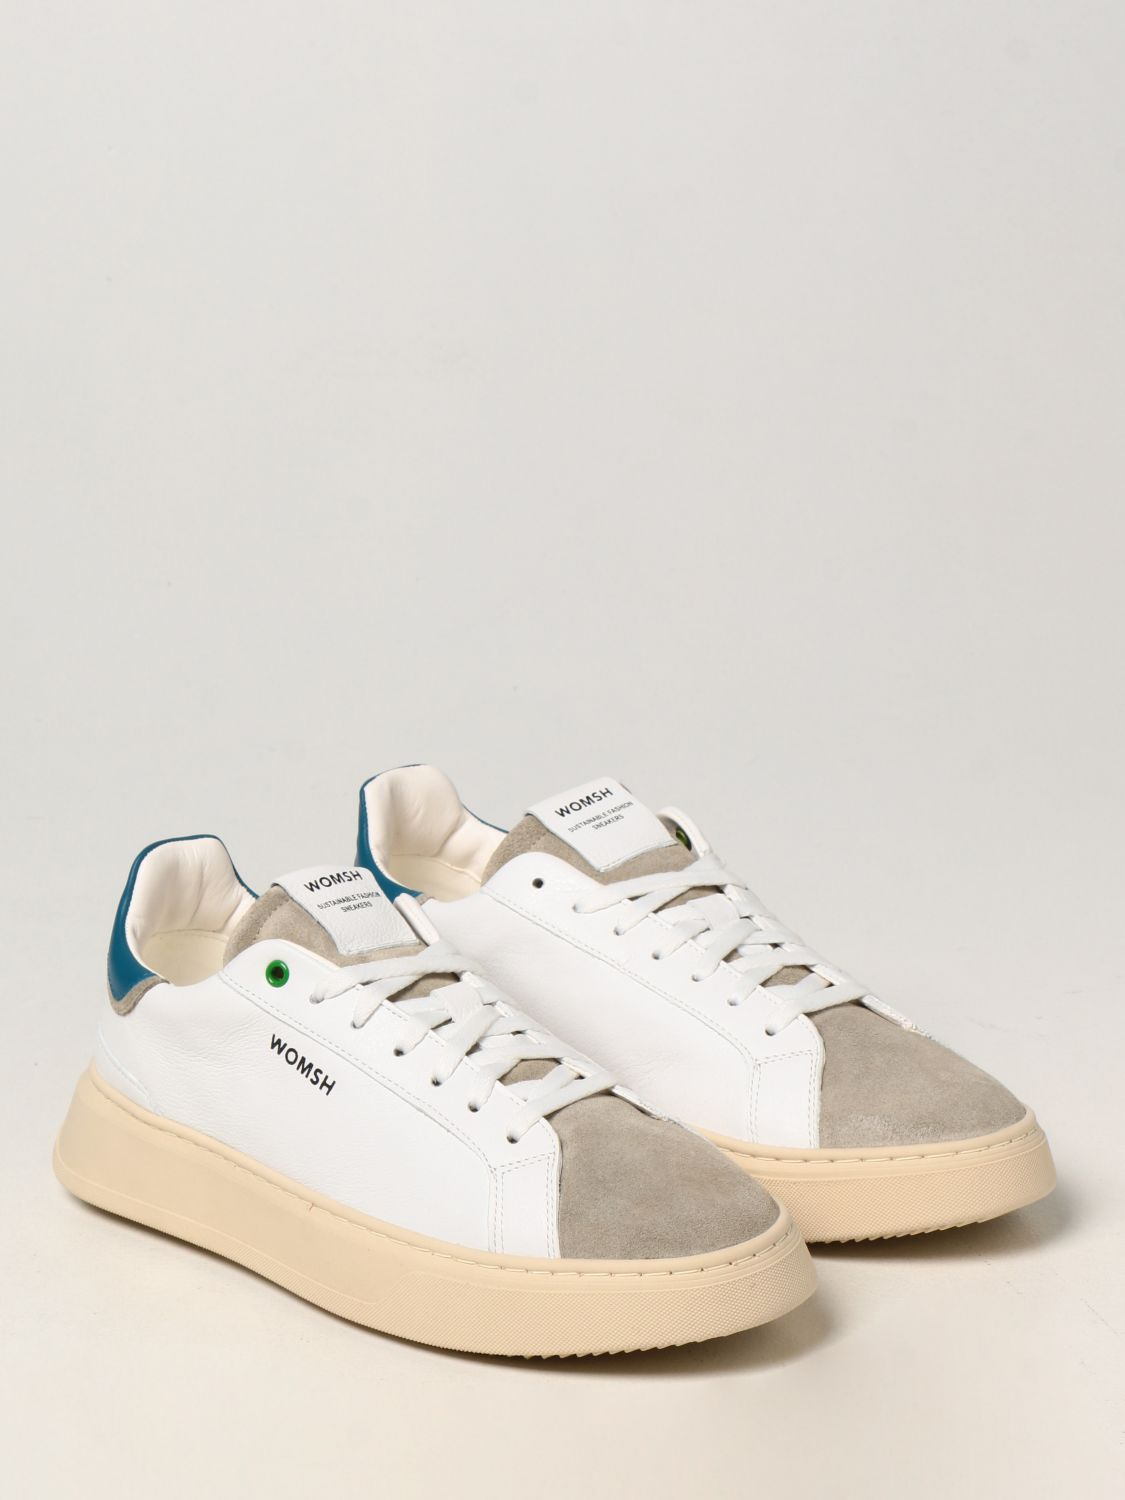 Zapatillas Womsh: Zapatos hombre Womsh beige 2